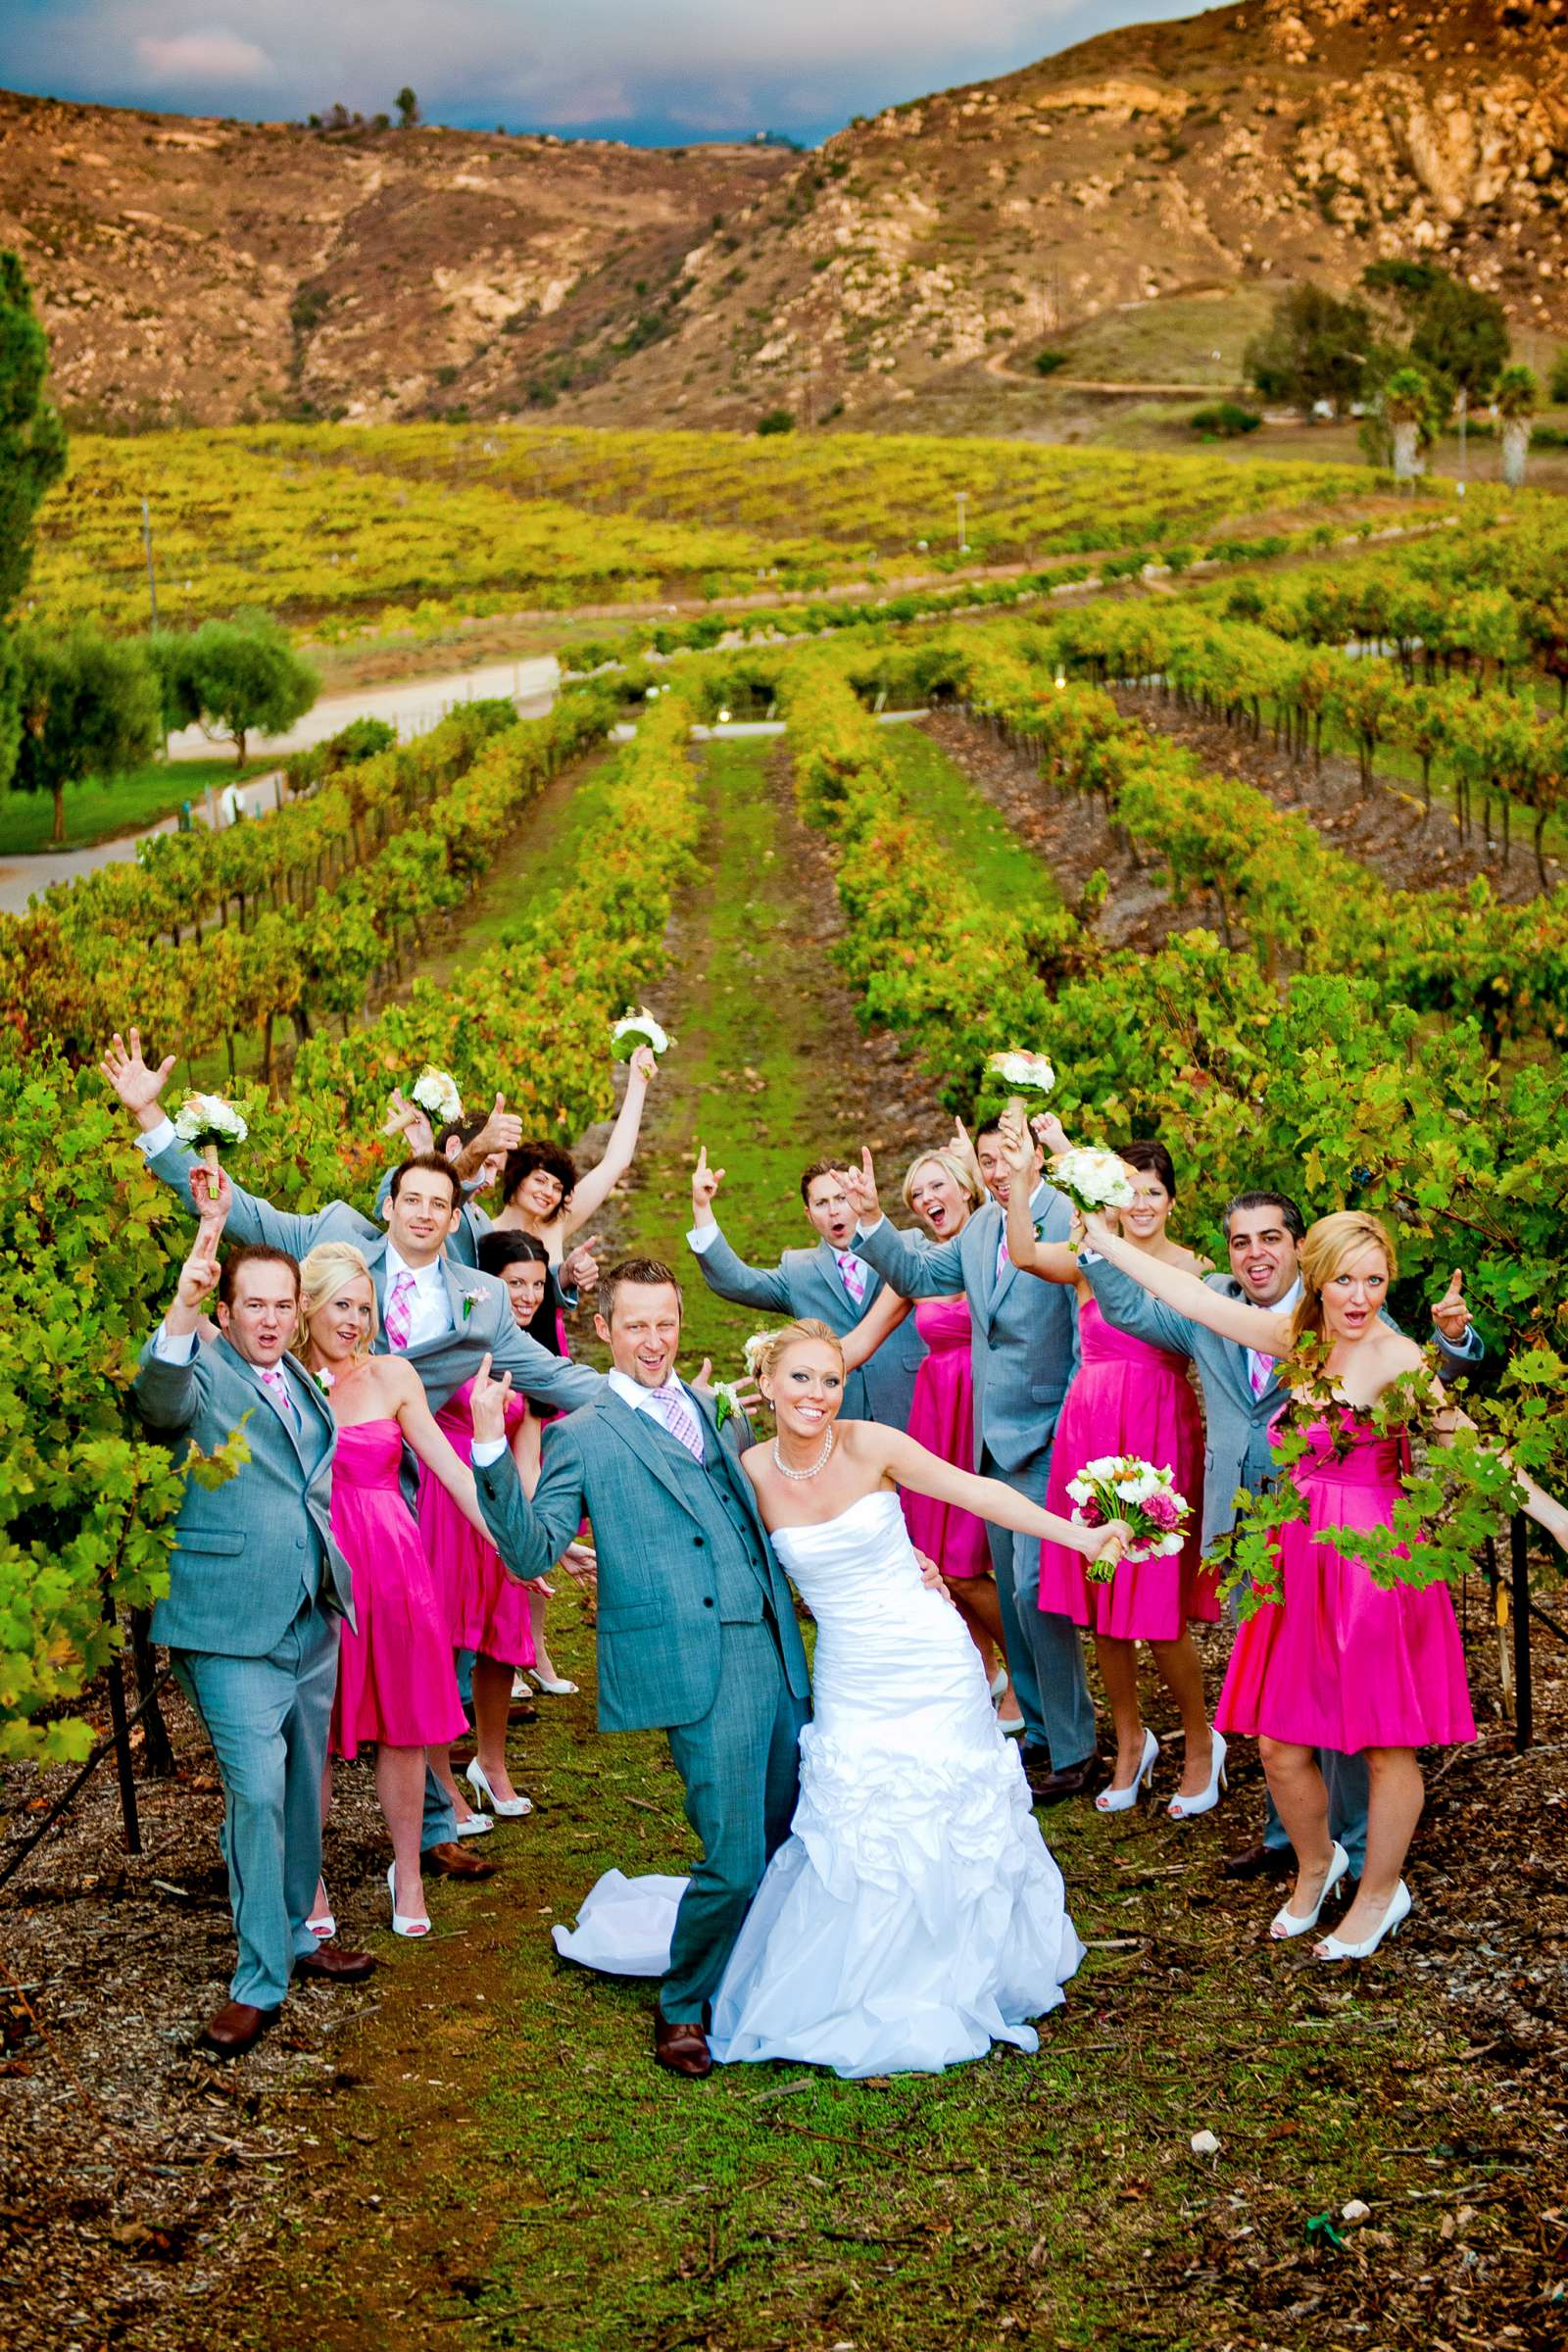 Orfila Vineyards Wedding, Mindy and Bryan Wedding Photo #216808 by True Photography